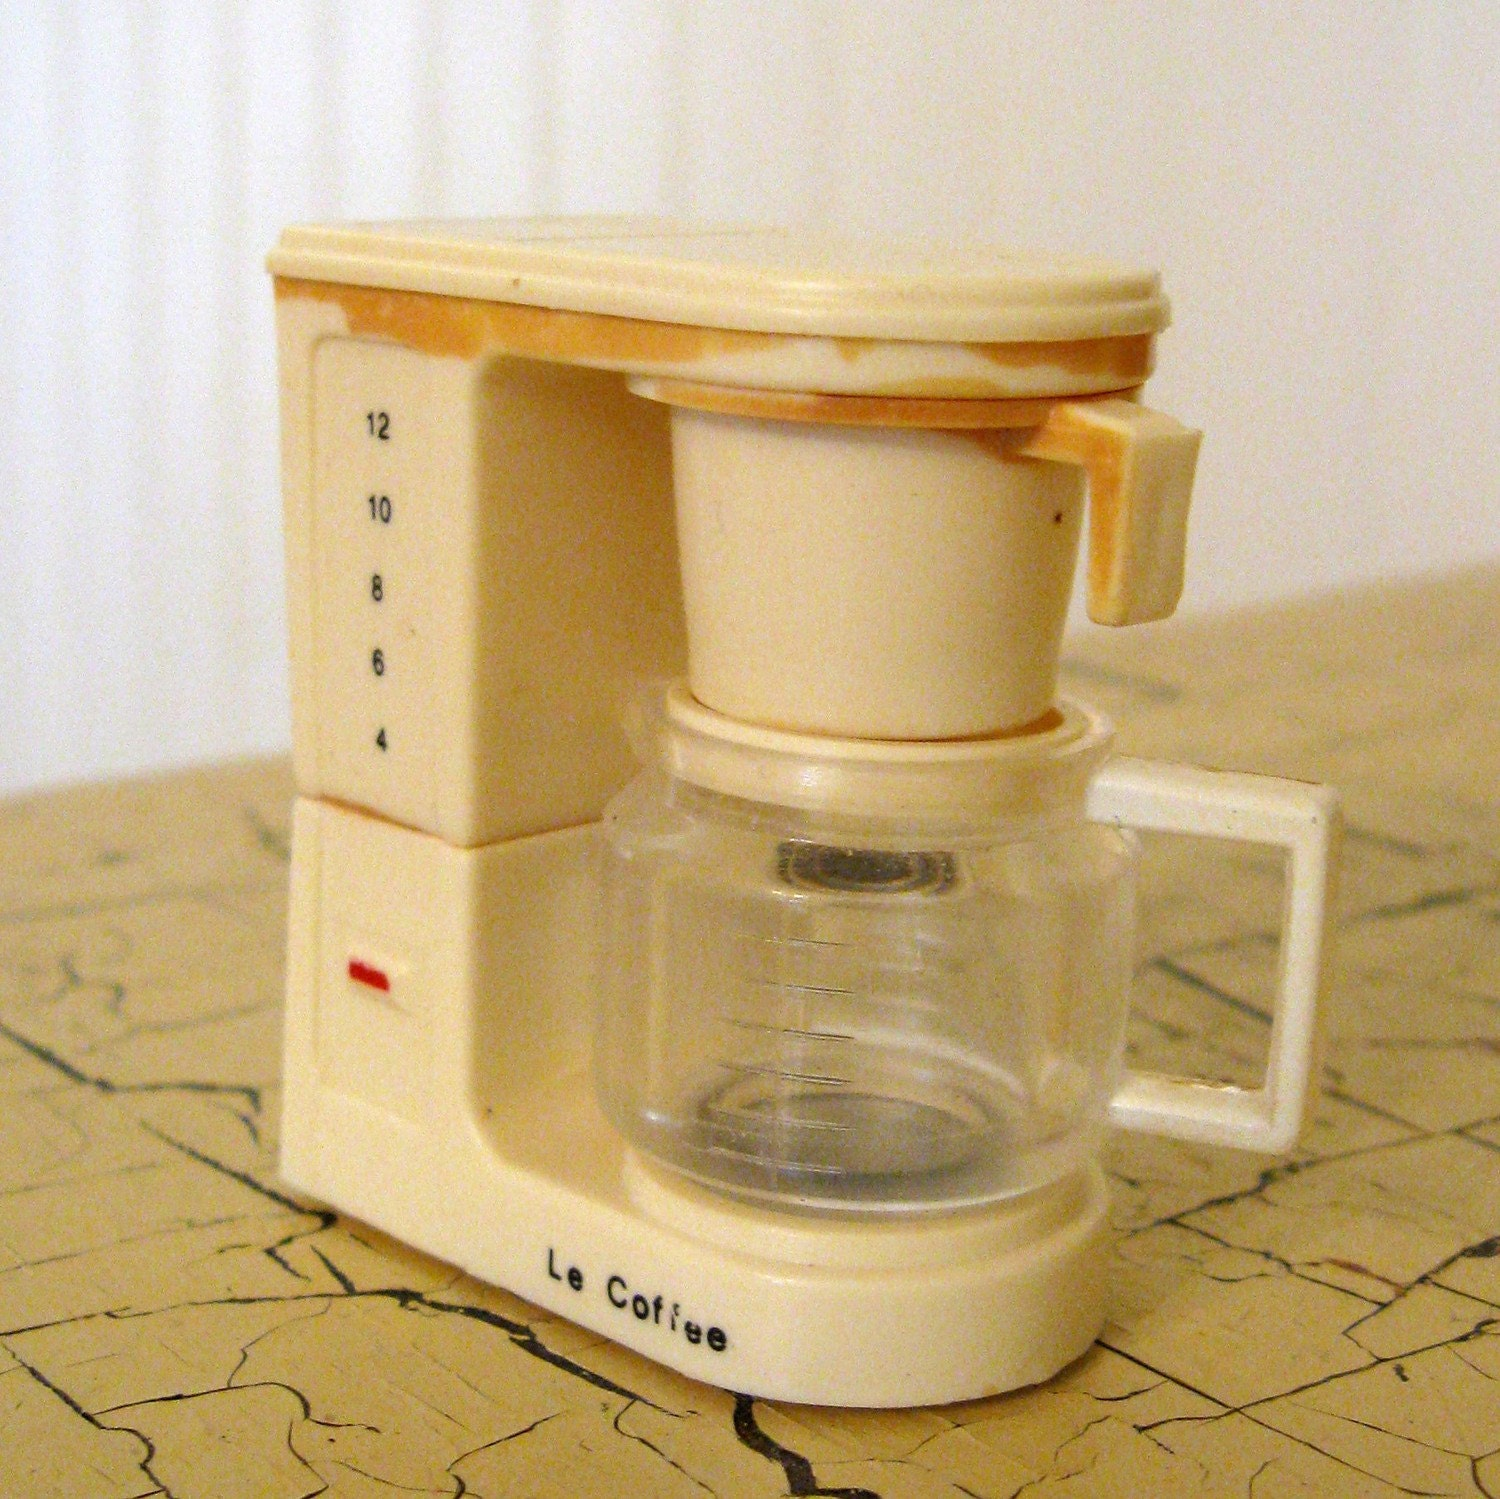 Retro Fridge Magnet Vintage Coffee Maker By Acme